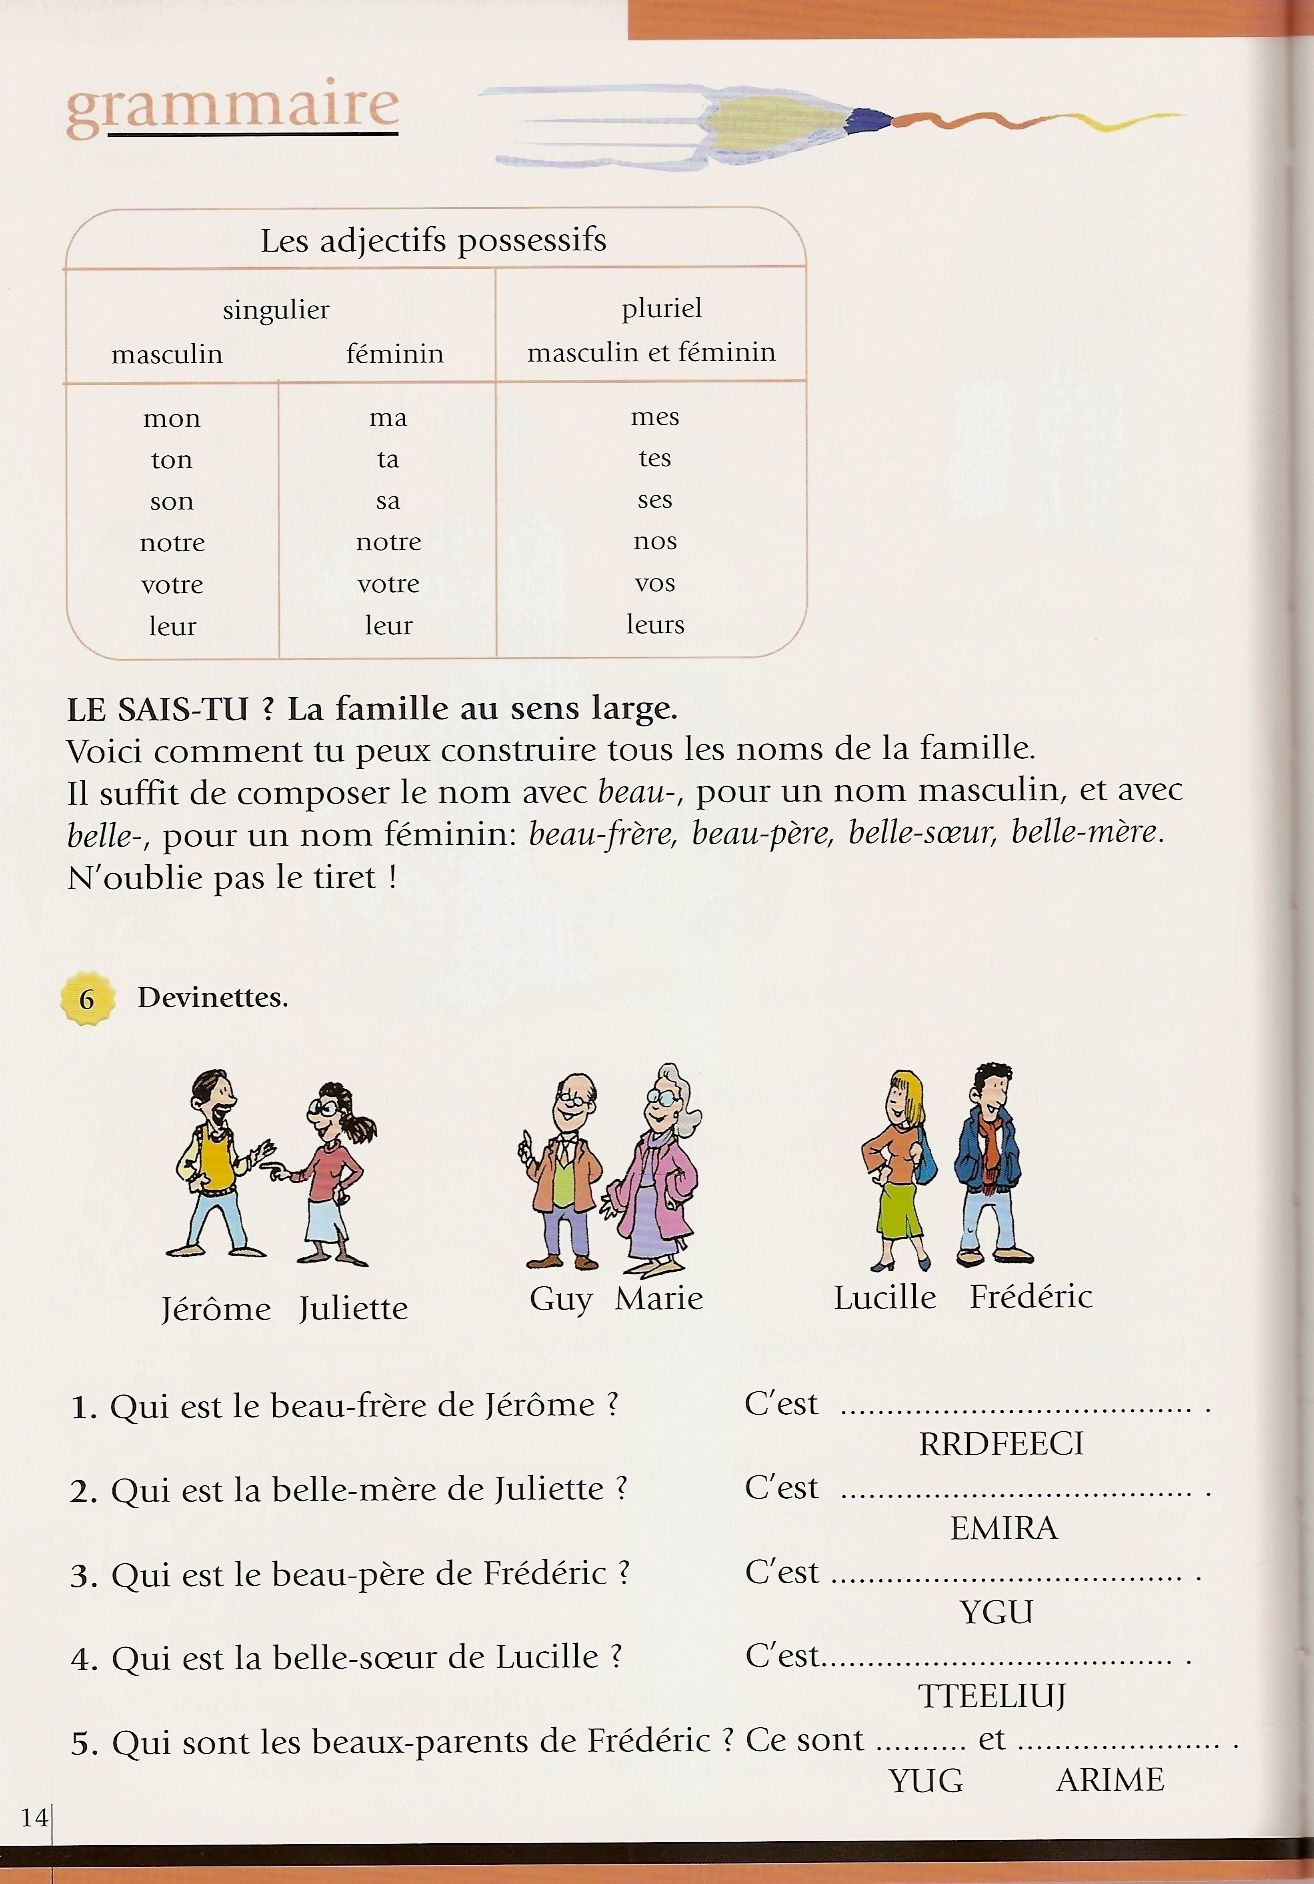 Souvent adjectifs possessifs et famille | FLE - Famille | Pinterest | Fle  AN32